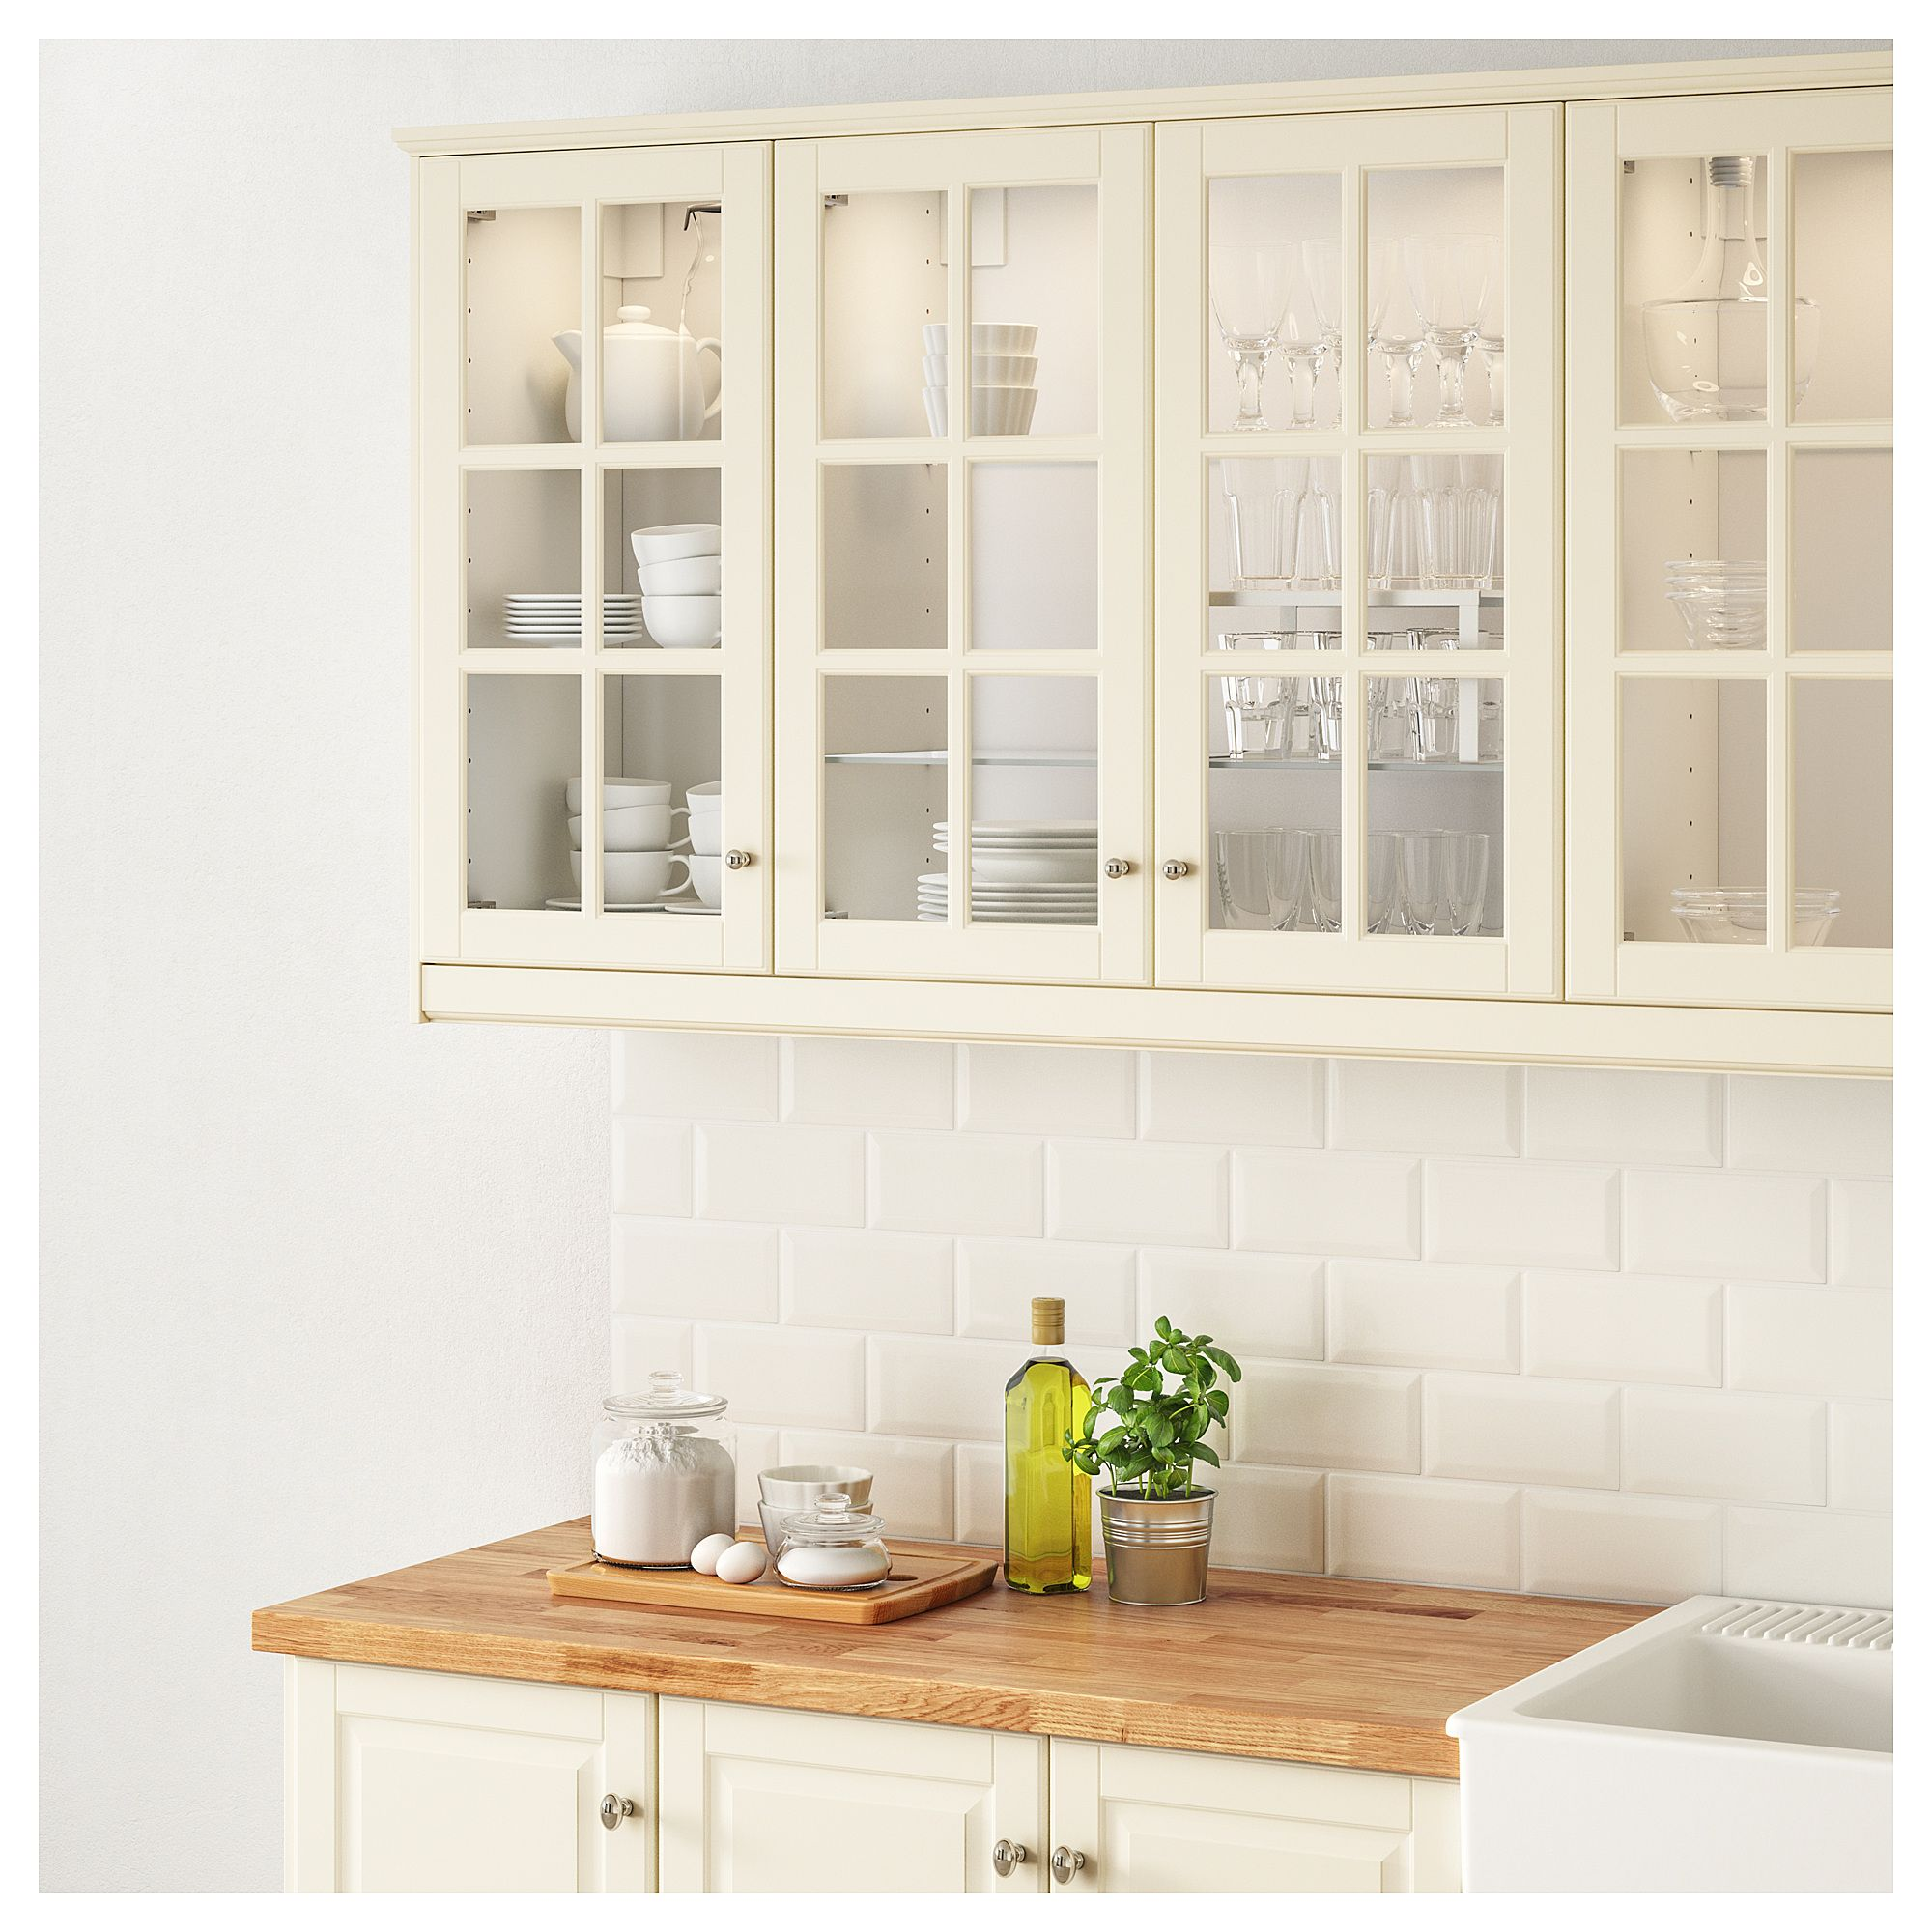 Best Ikea Bodbyn Glass Door Off White Kitchen Design New 400 x 300